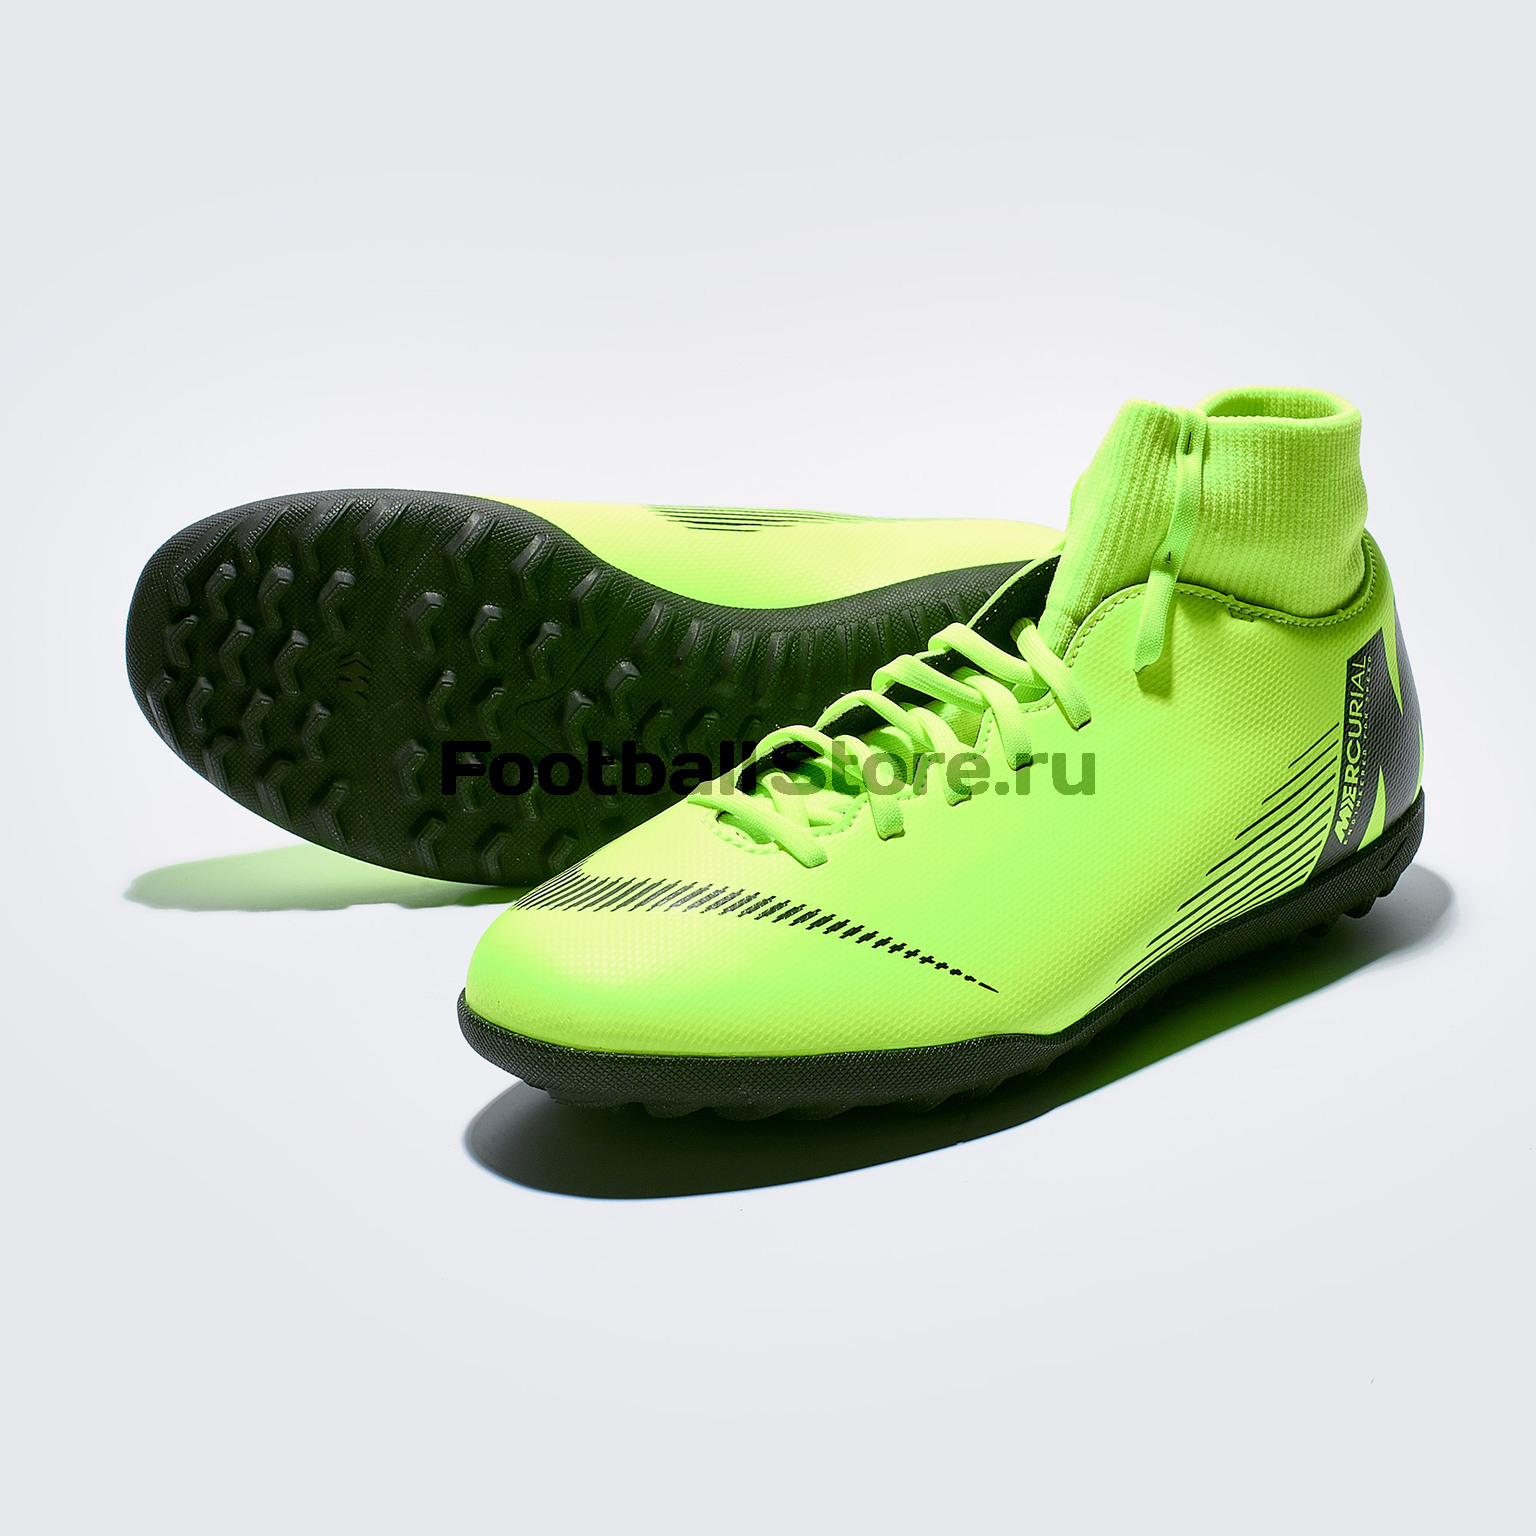 Шиповки Nike SuperflyX 6 Club TF AH7372-701 бутсы nike шиповки nike jr tiempox legend vi tf 819191 018